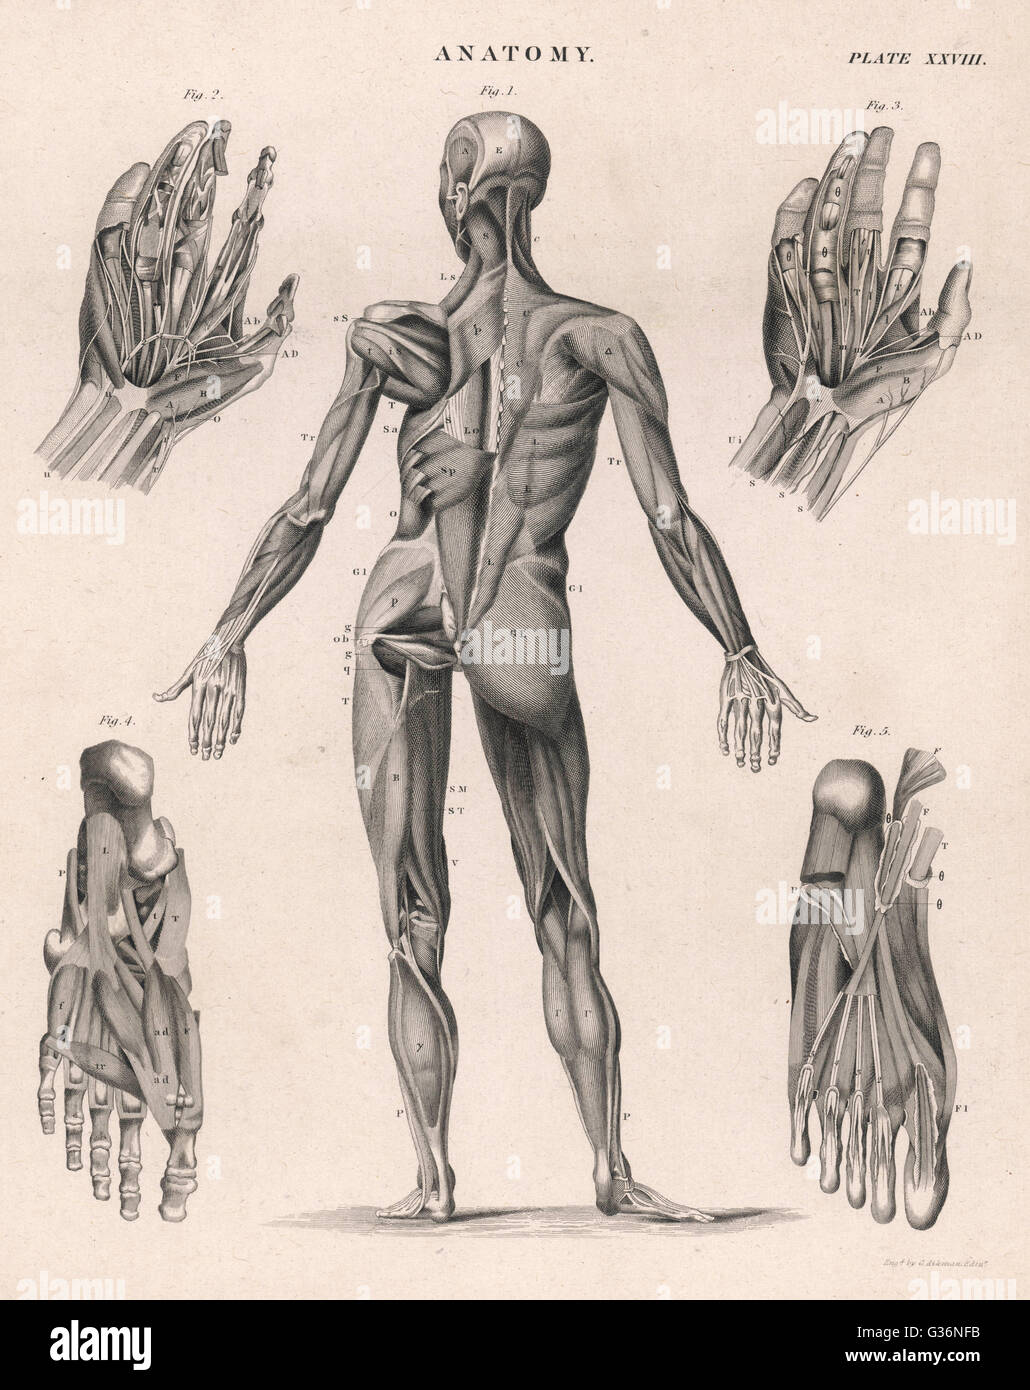 a human body, showing the muscles of the body, hands and feet, Cephalic Vein